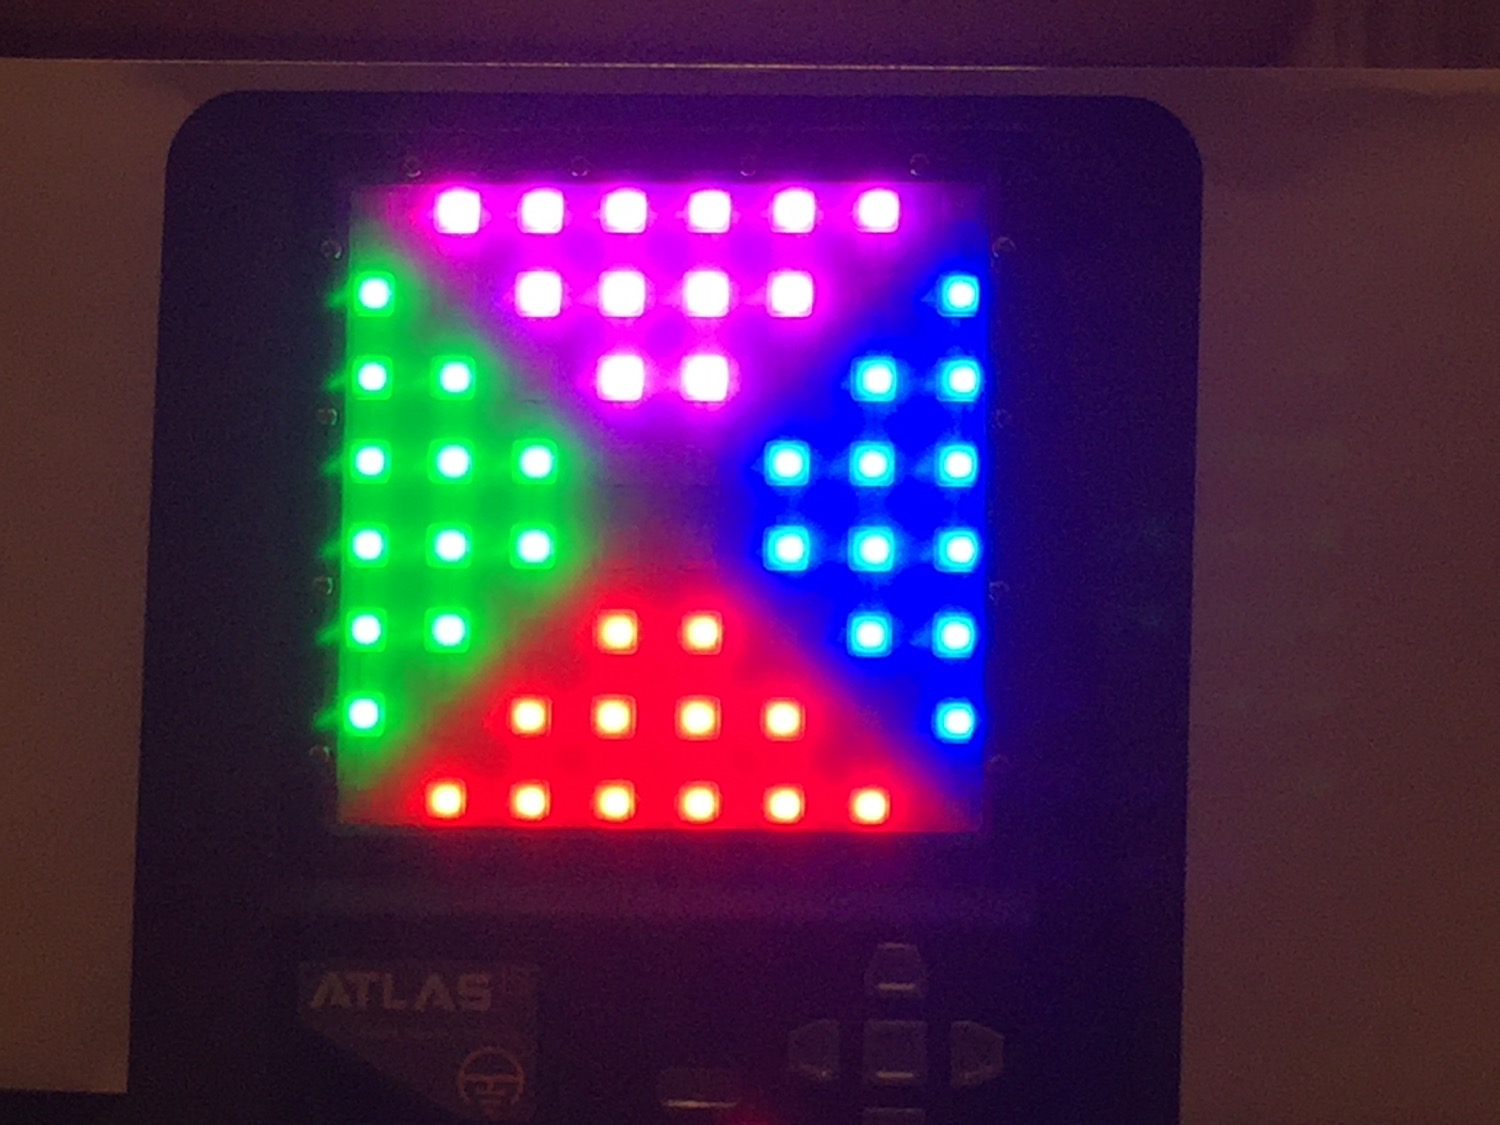 """LEDs are SUPER bright and would work very well outside. The ATLAS has a number of training modes like Simon/Memory, """"Crowd"""", and Hostage which allow for very different training opportunities."""